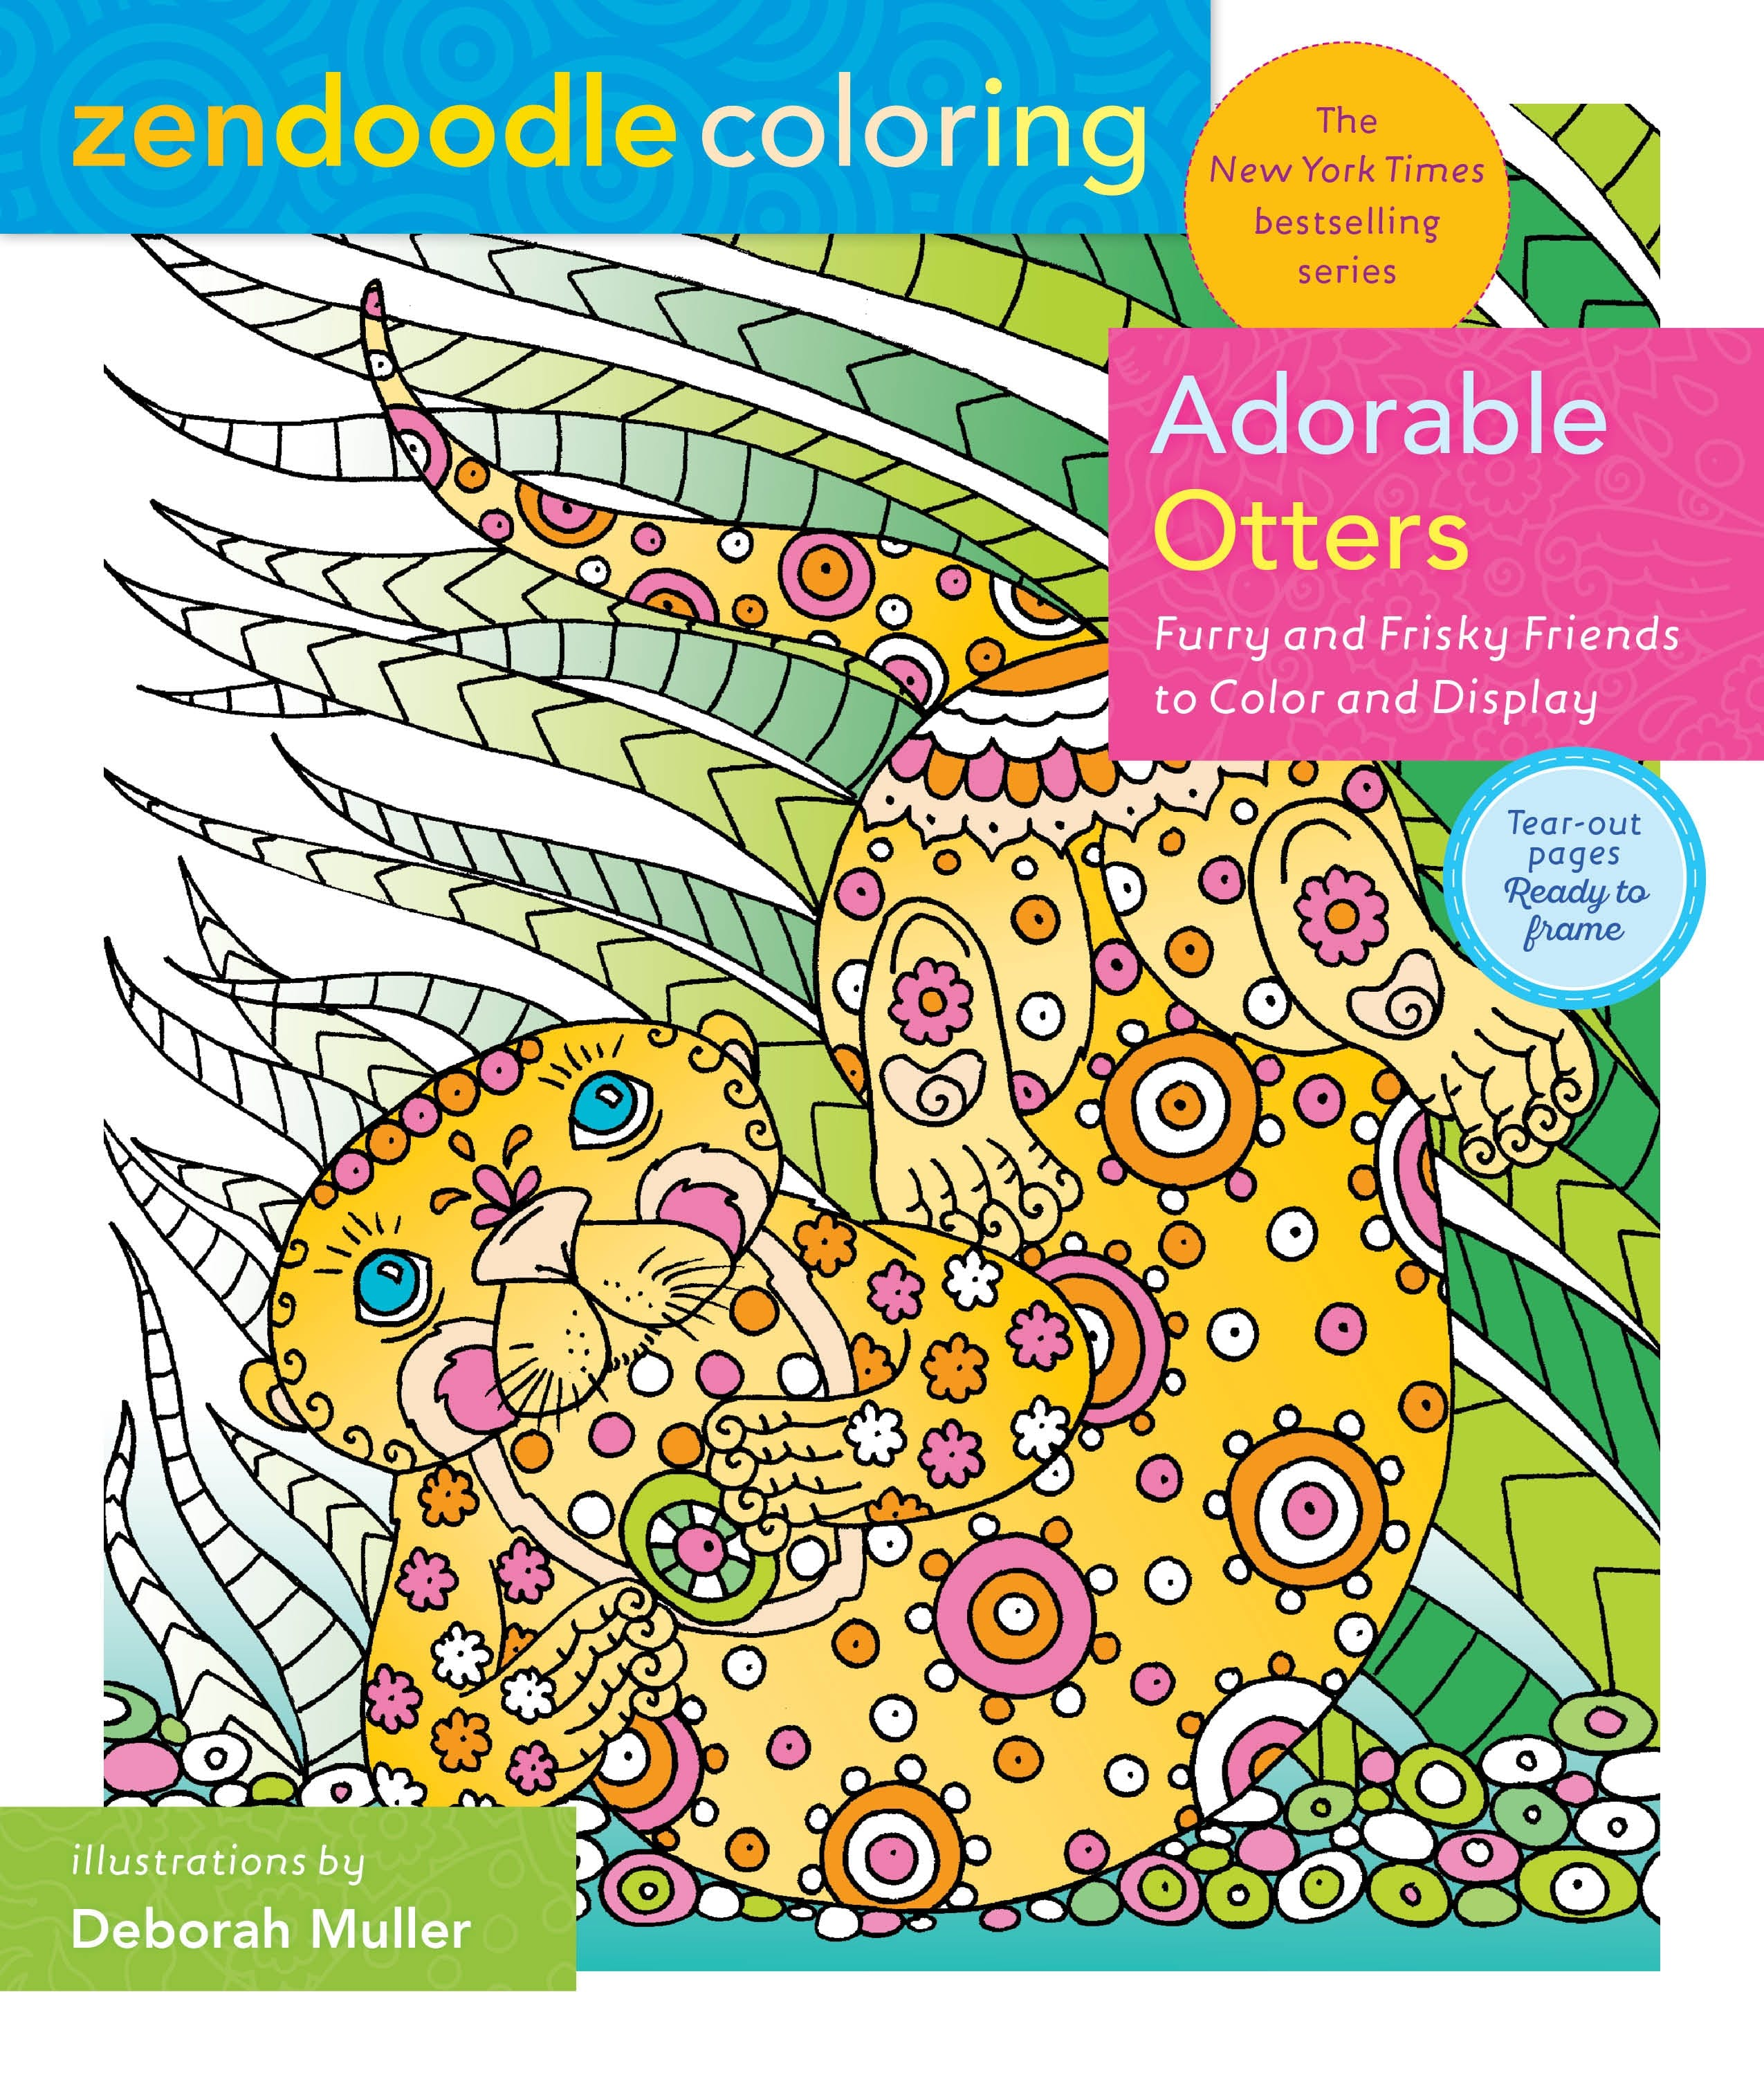 Image of Zendoodle Coloring: Adorable Otters